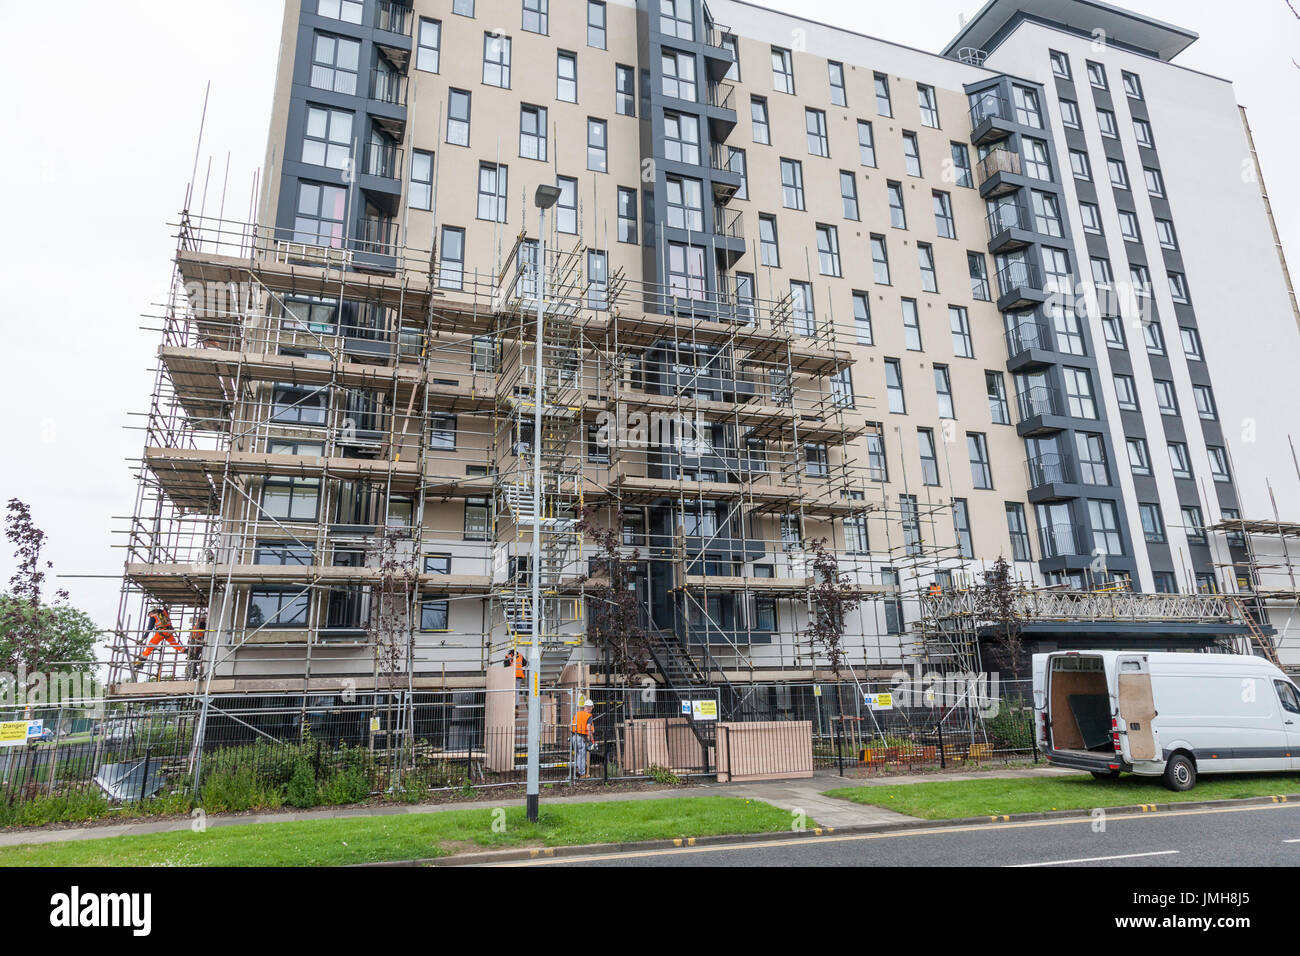 Workmen at Kennedy Gardens high rise flats in Billingham,Teesside,England, removing unsafe cladding after checks in the wake of  Grenfell Tower fire - Stock Image